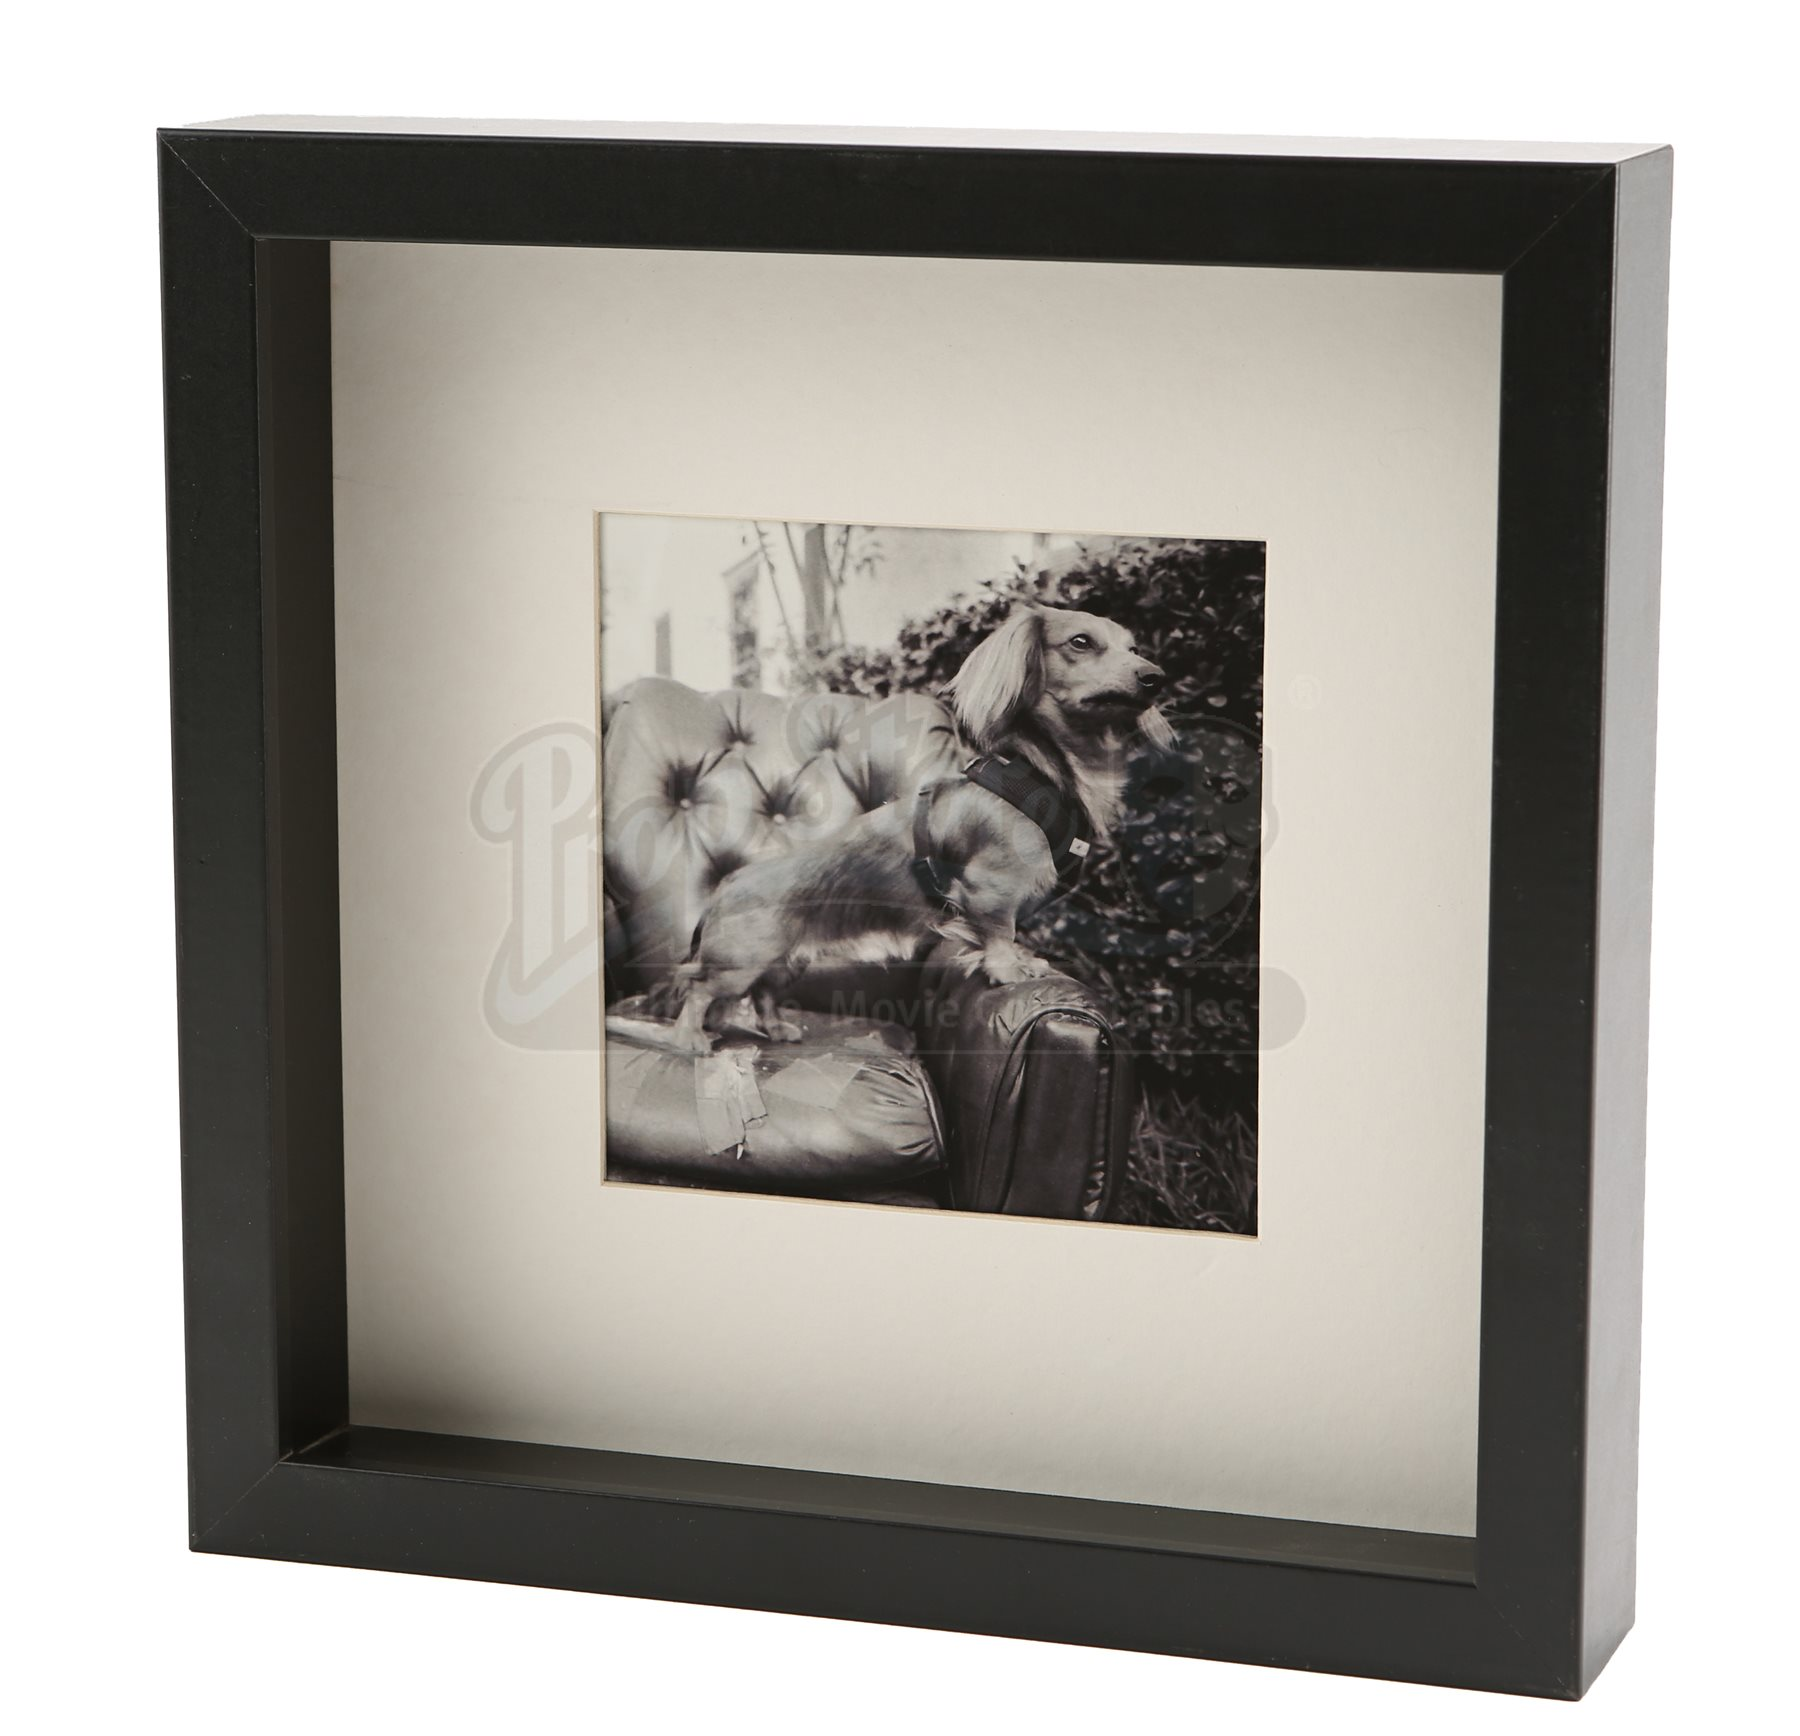 Cullen house framed dog photograph current price 450 for Twilight house price